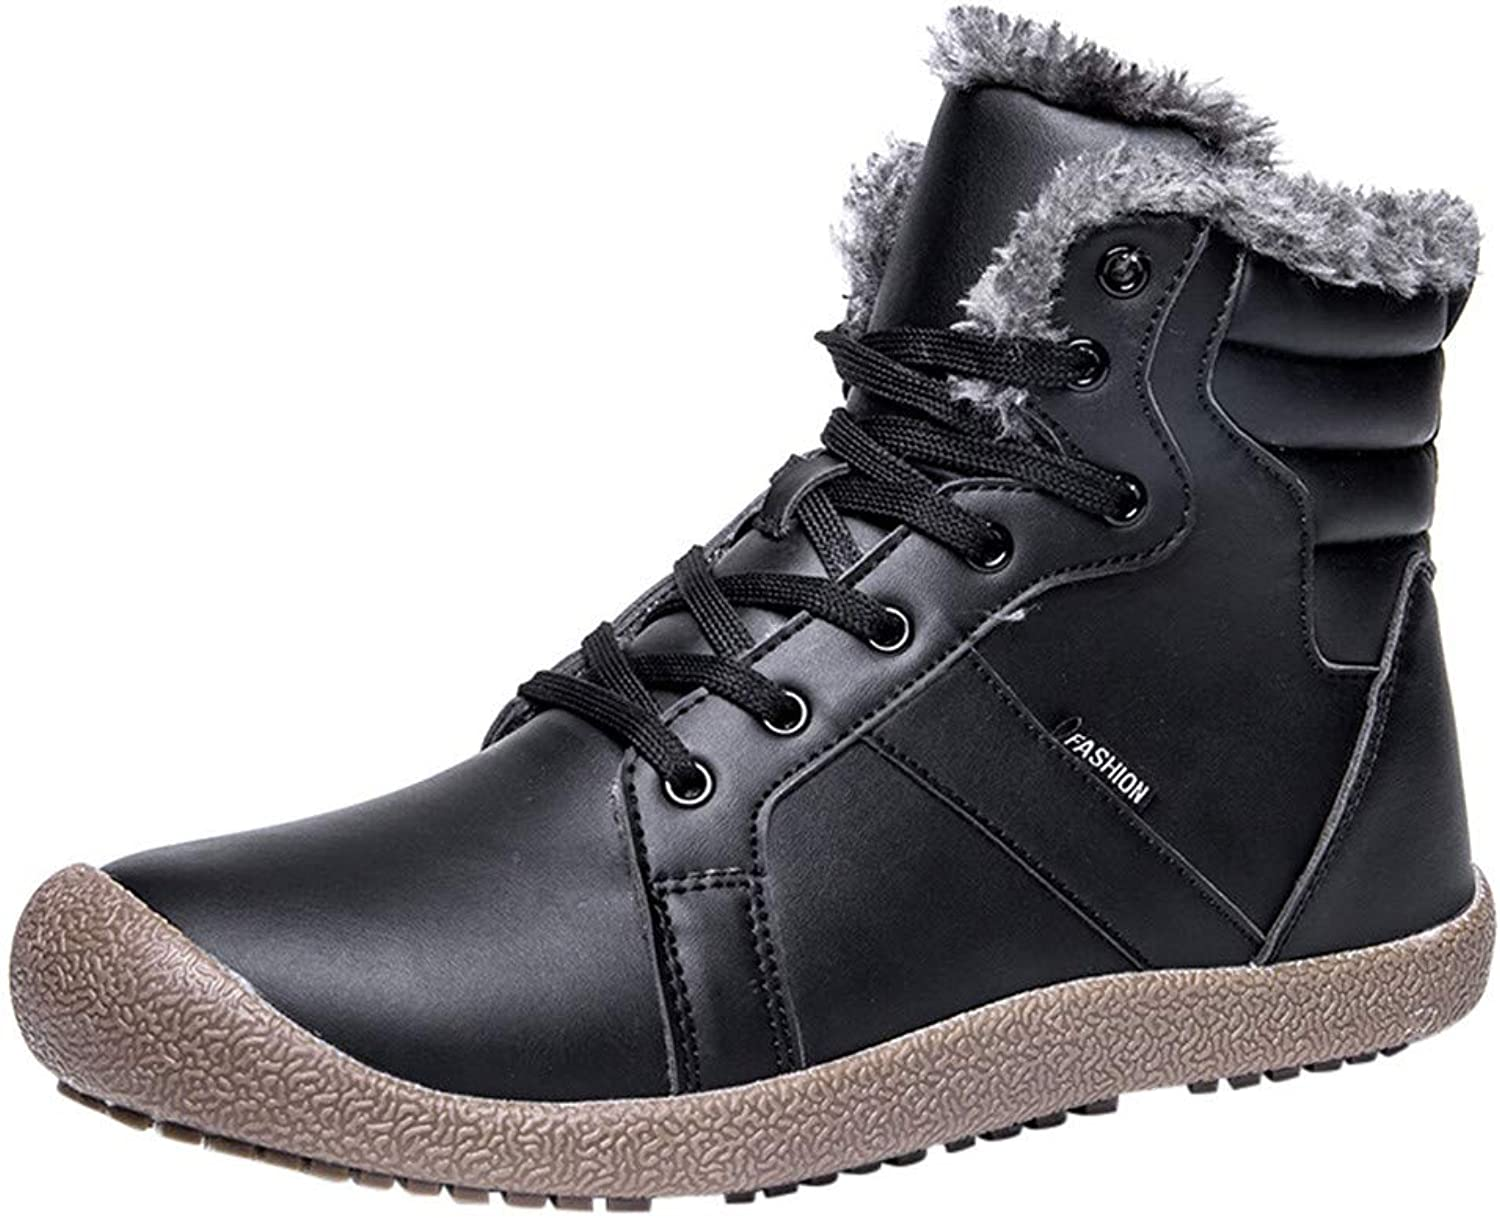 Goodtrade8 Clearance Women Winter Warm Snwo Boots Leather Running shoes Couple Sneakers Outdoor Skiing